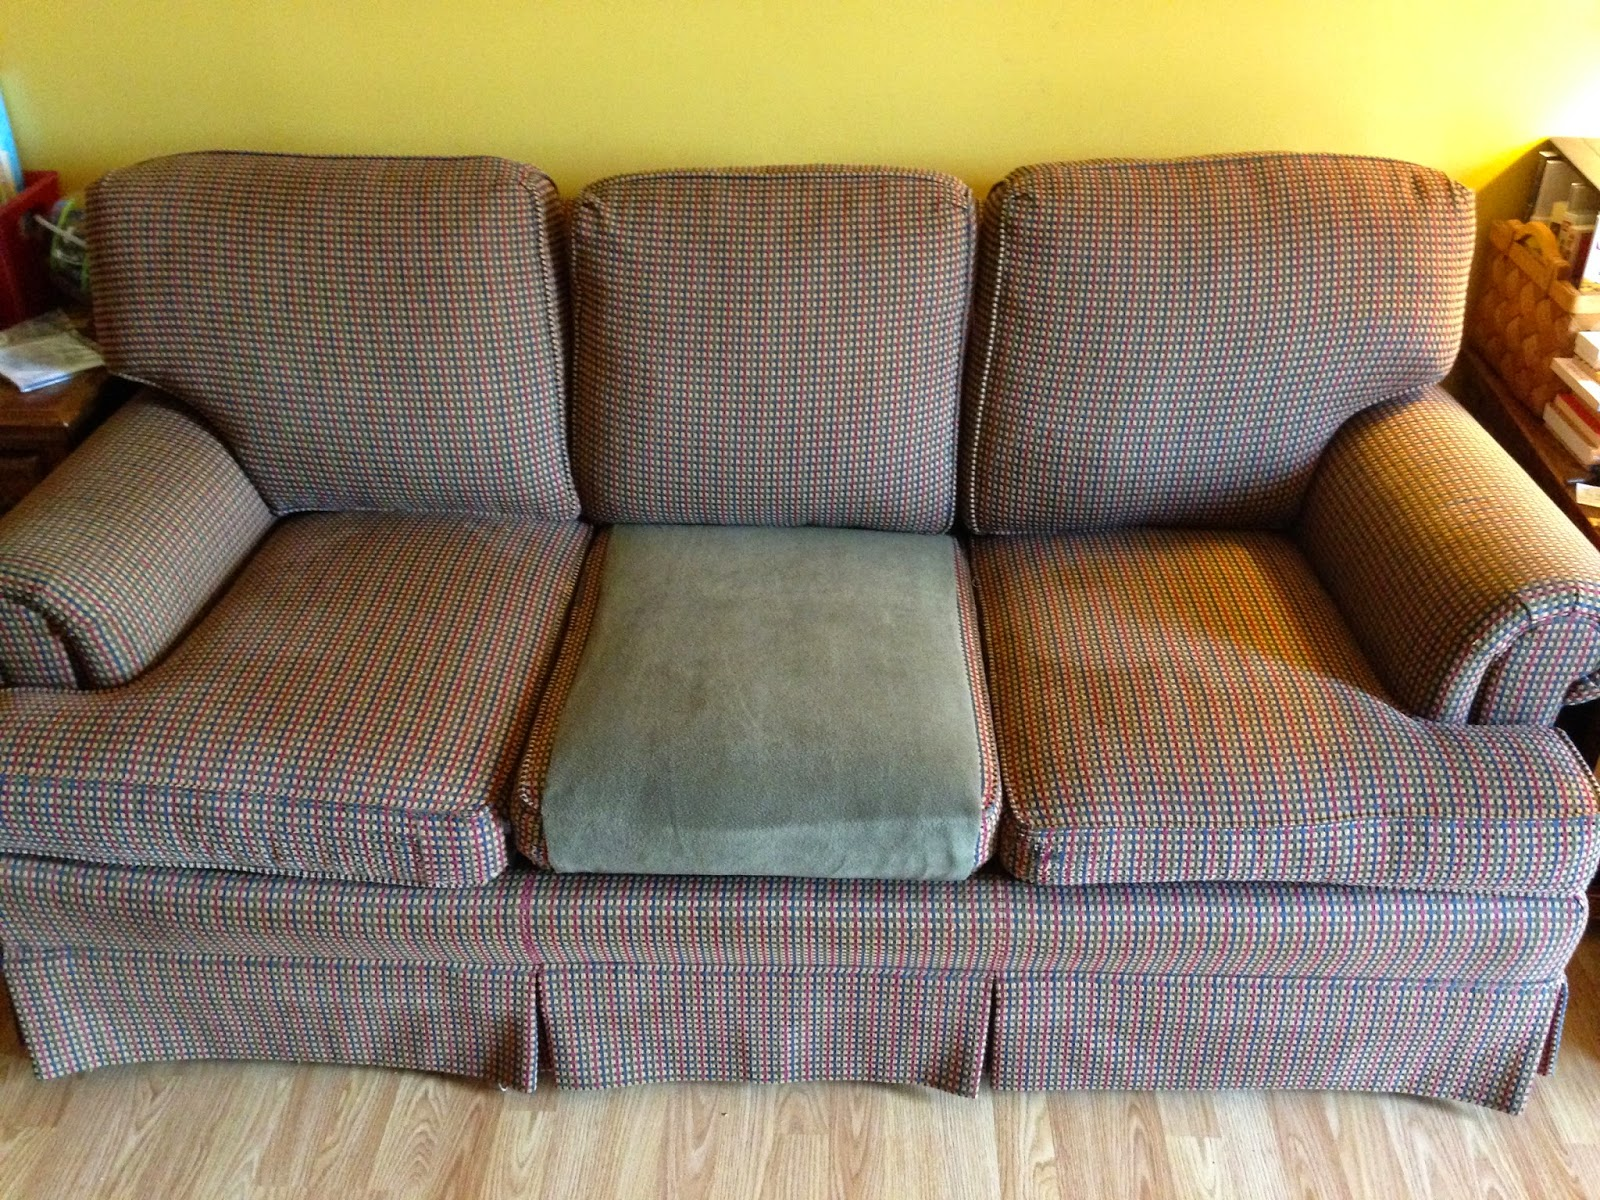 how to fix sofa back cushions french connection coast review babyfingers quick and easy 15 minute for damaged